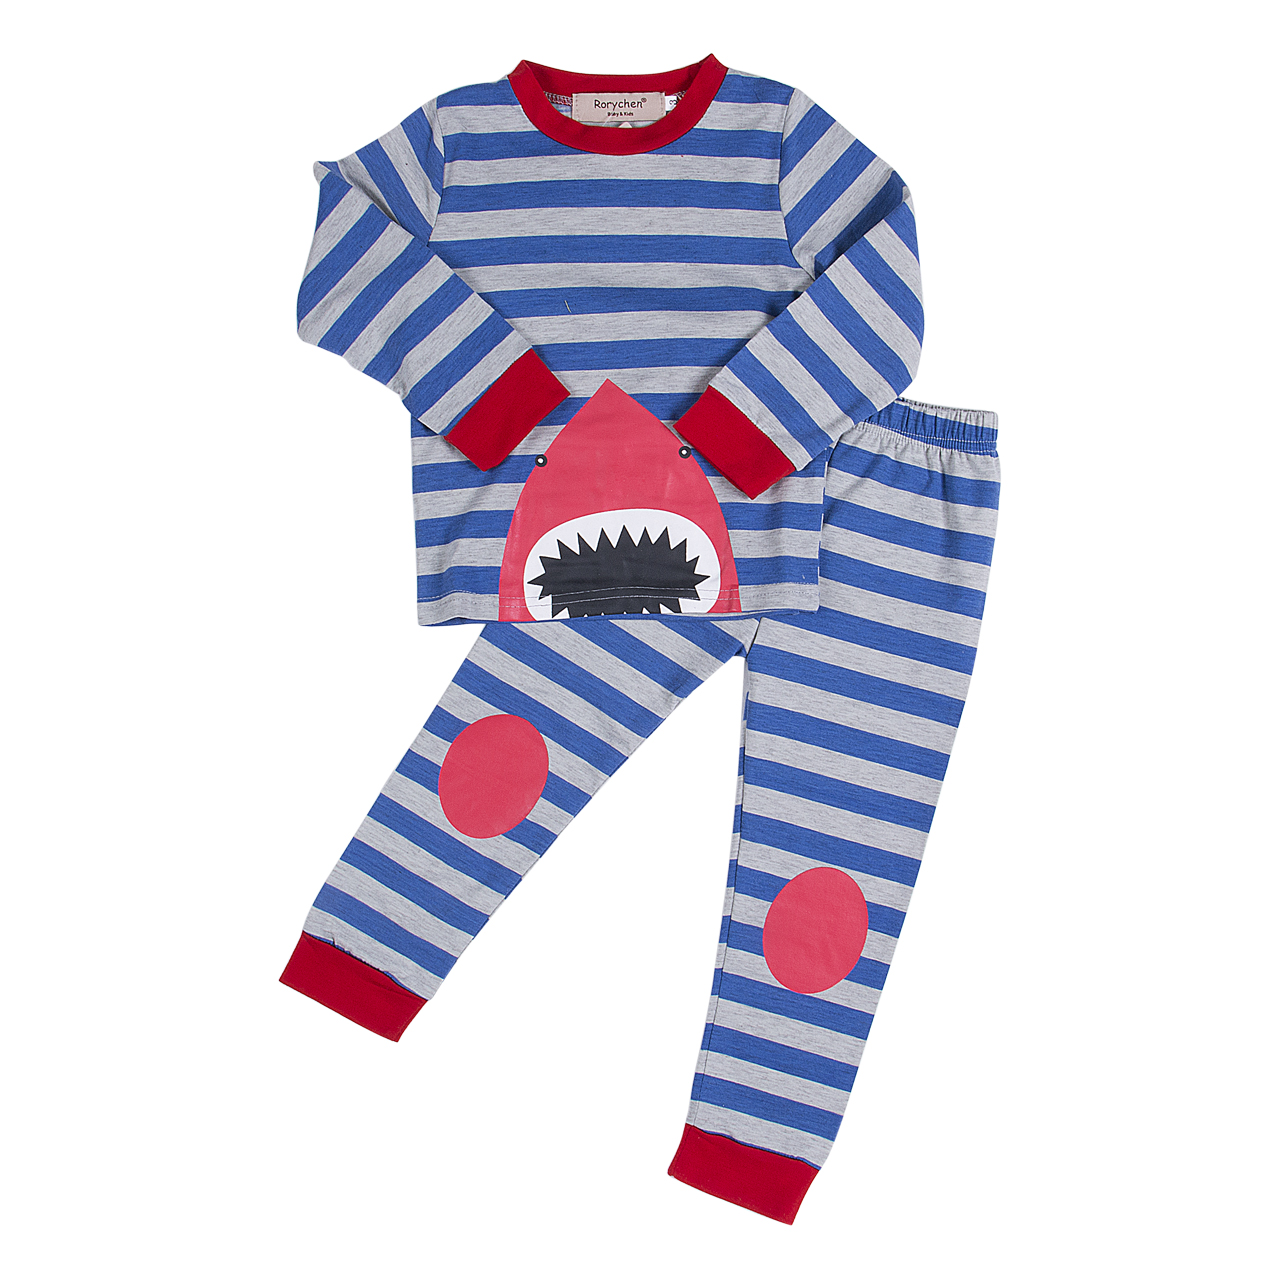 online buy whole boys shark pajamas from boys shark toddler kids striped shark sleepwear girls boys baby cute shark pajamas set sleepwear nightwear striped